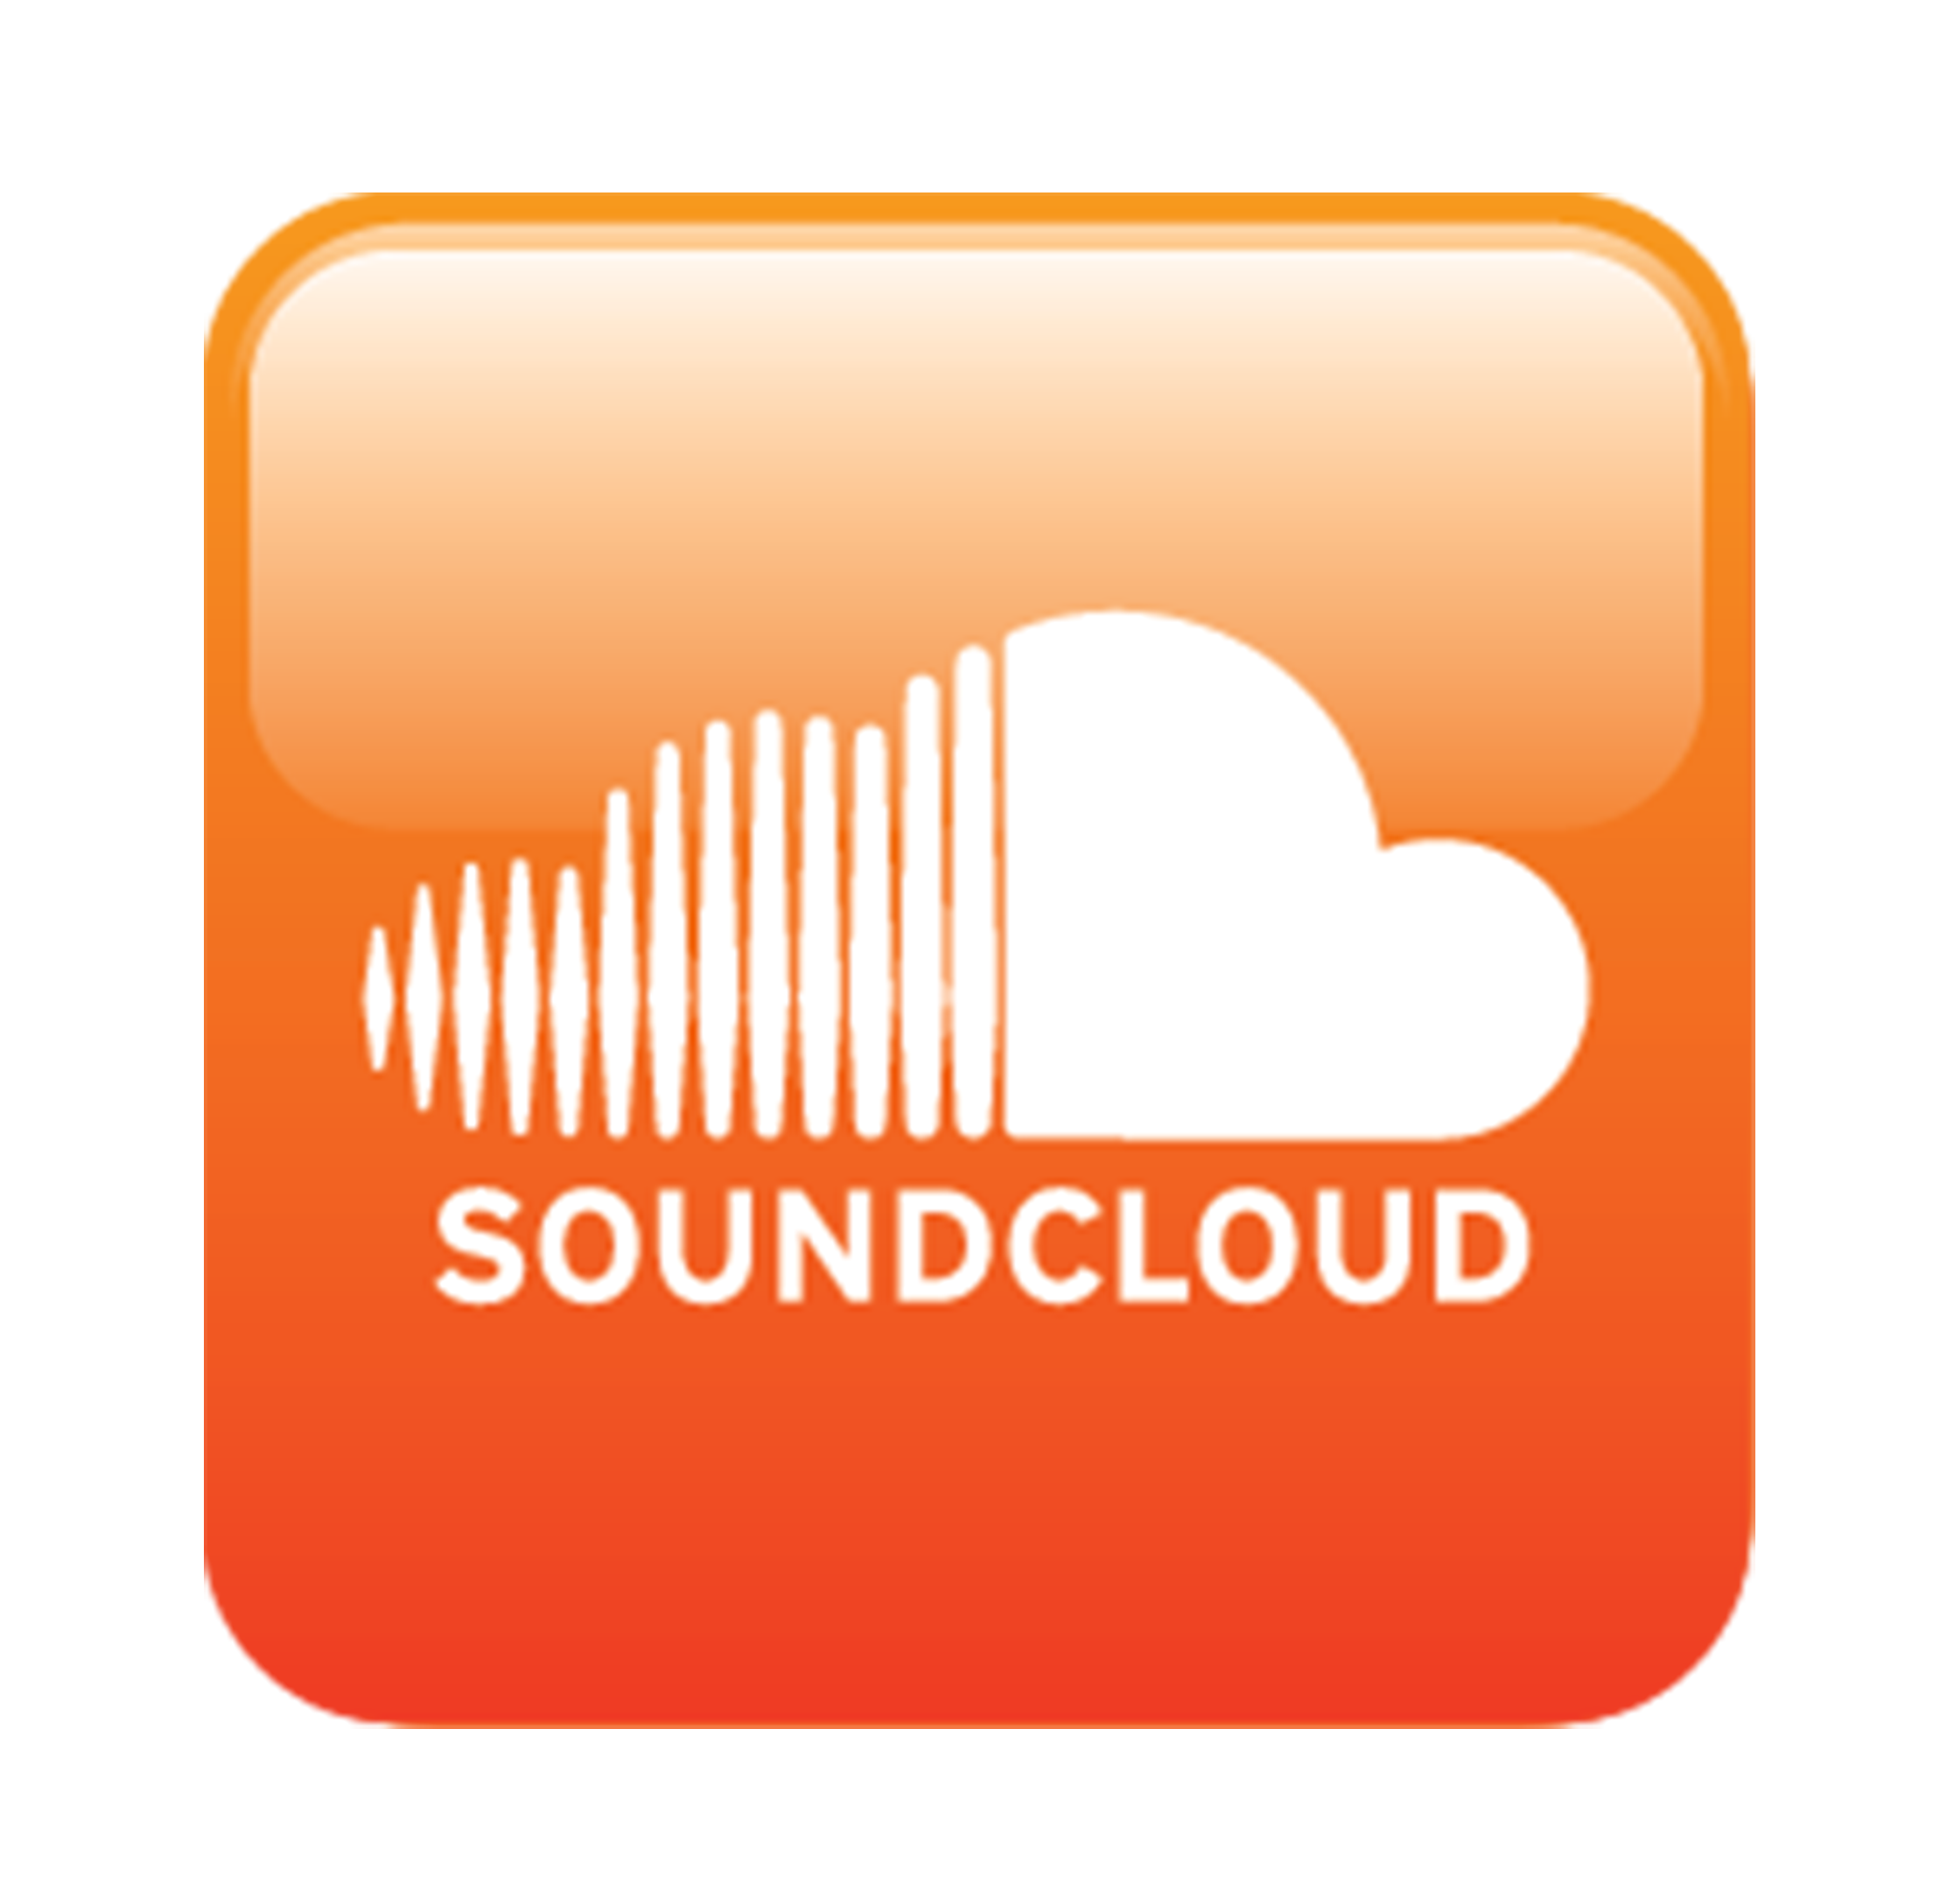 for free download. Soundcloud icon png